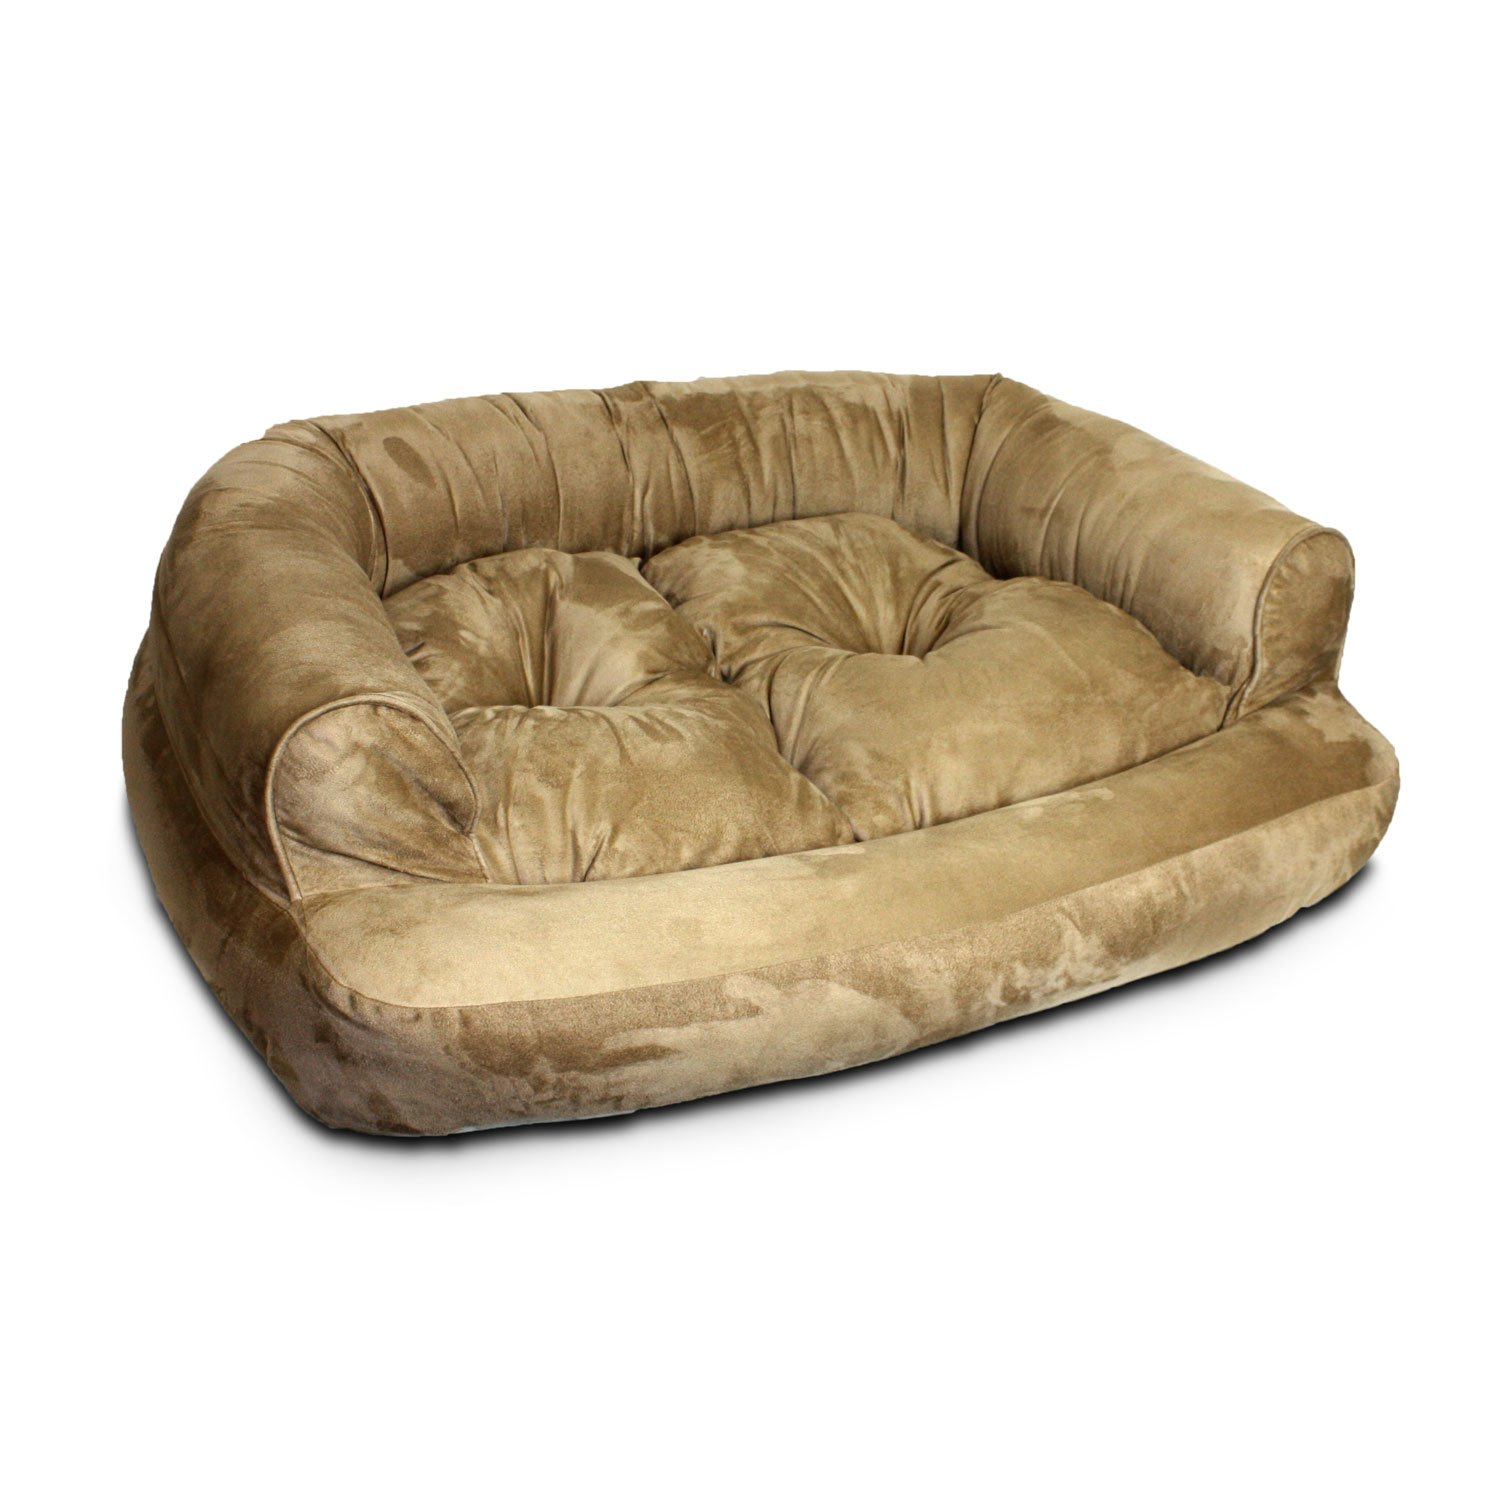 Overstuffed sofa - Snoozer Luxury Overstuffed Sofa In Peat